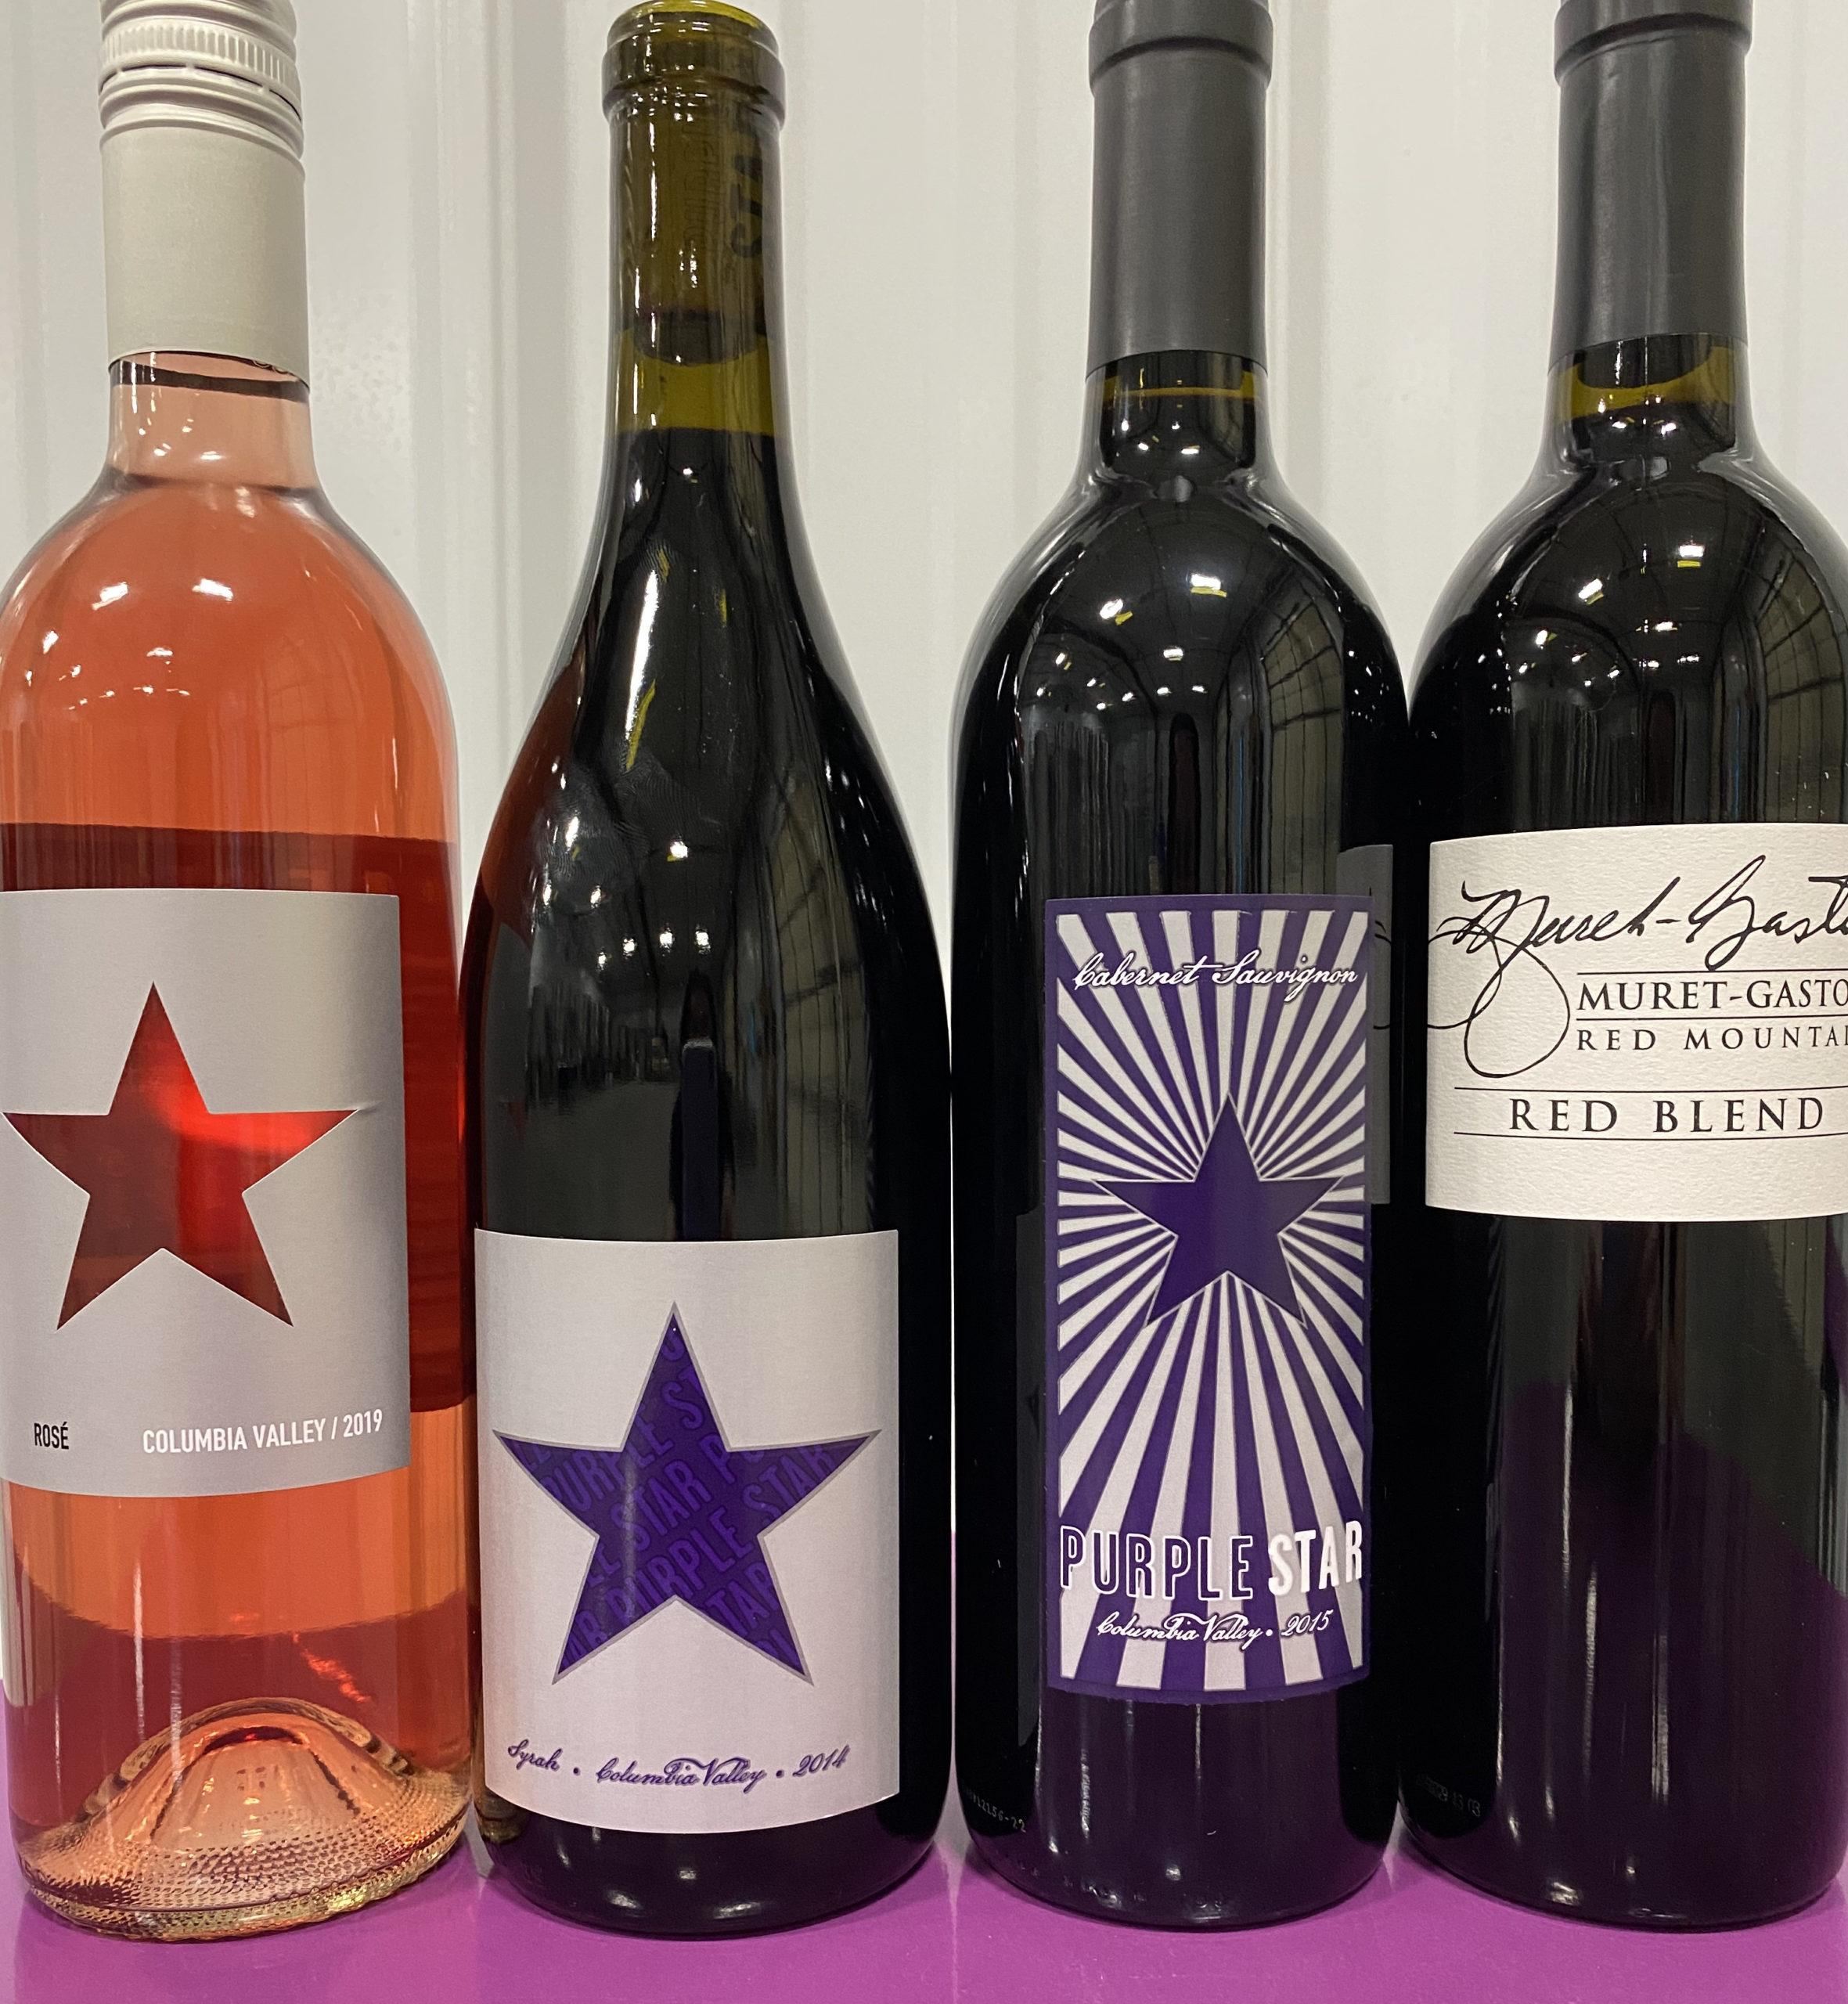 Bundle scaled - 4-Pack Special from Purple Star Winery